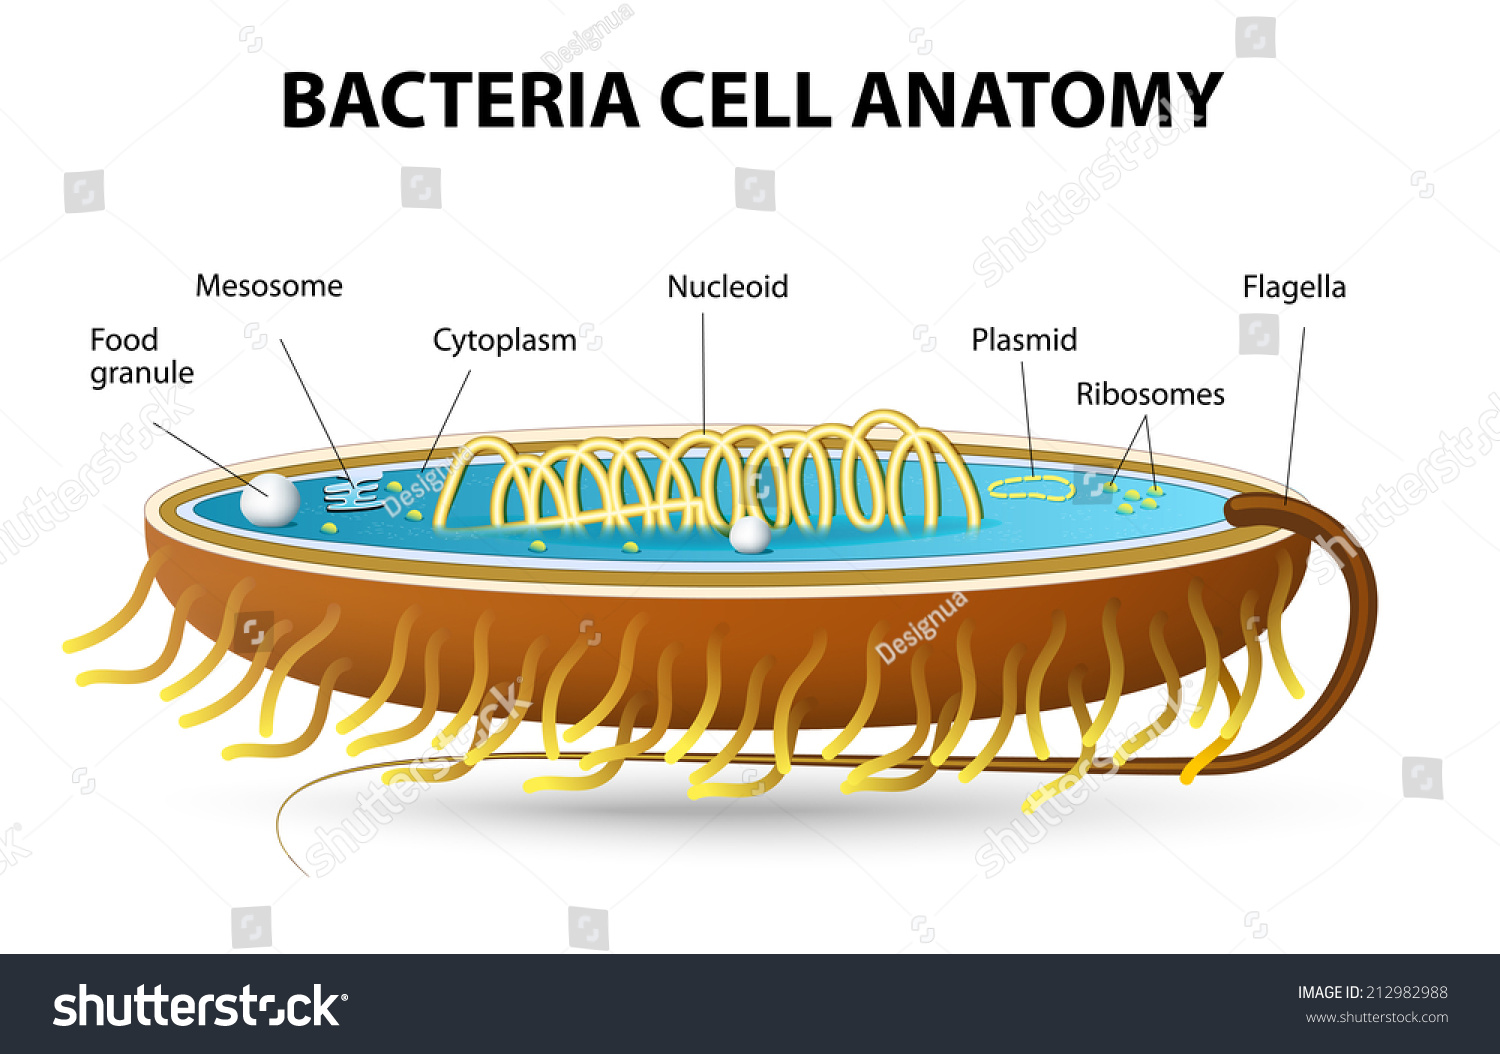 Cell structure of bacteria with diagram - Structure Of Bacterial Cell Cutaway Vector Diagram Of A Typical Bacterial Cell Illustrating Structural Components